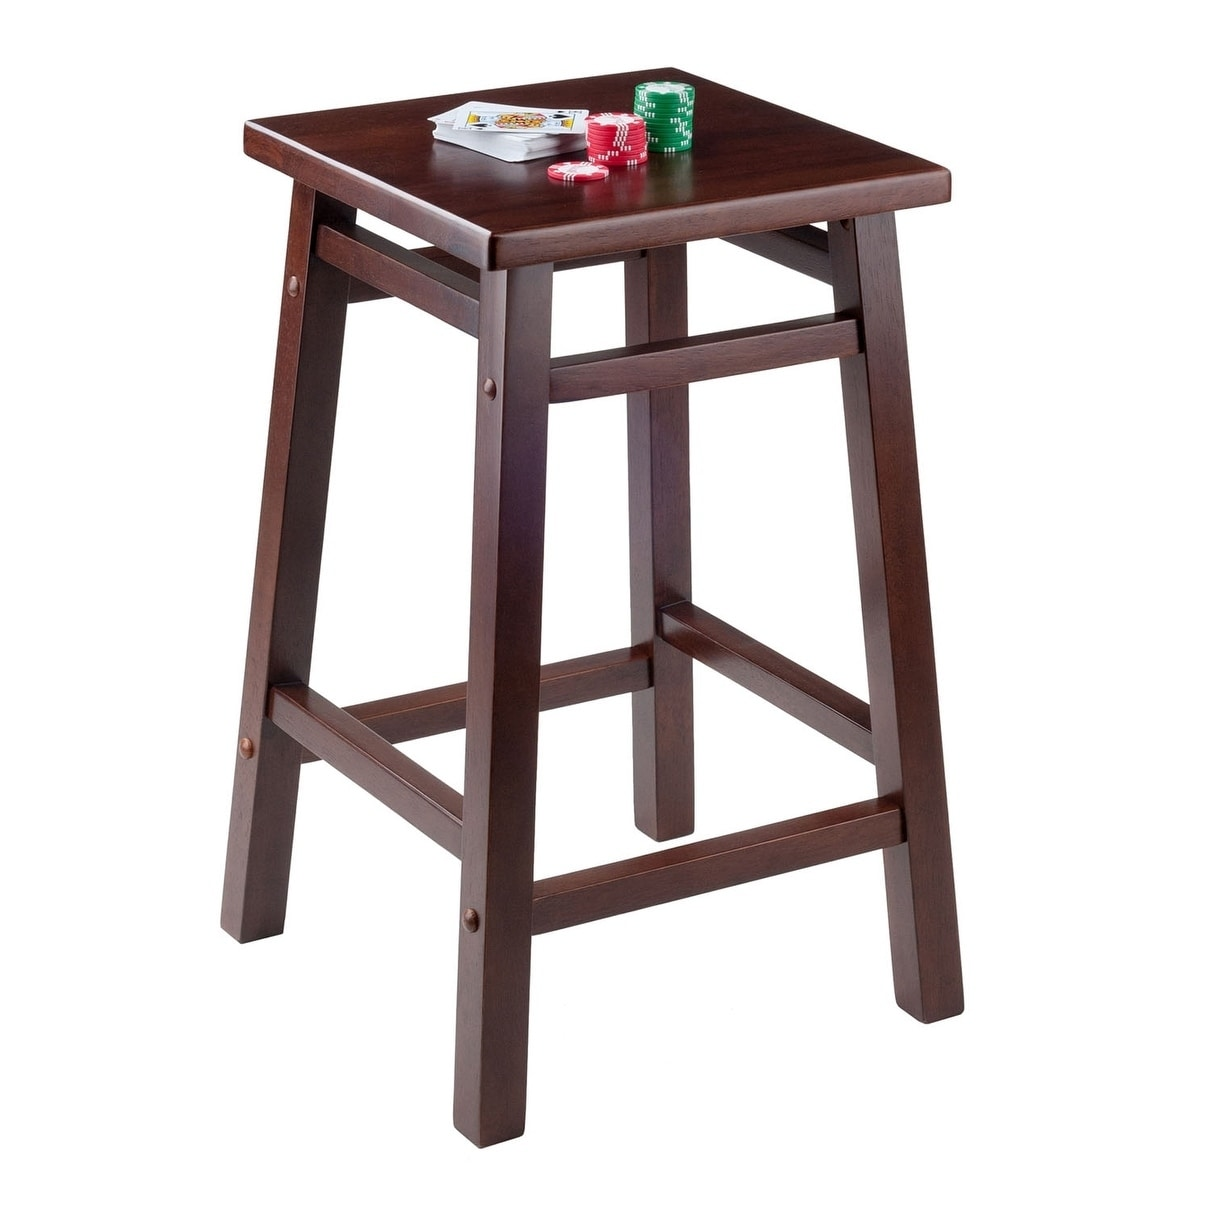 Winsome 24 Carter Solid Wood Counter Stool In Walnut Finish